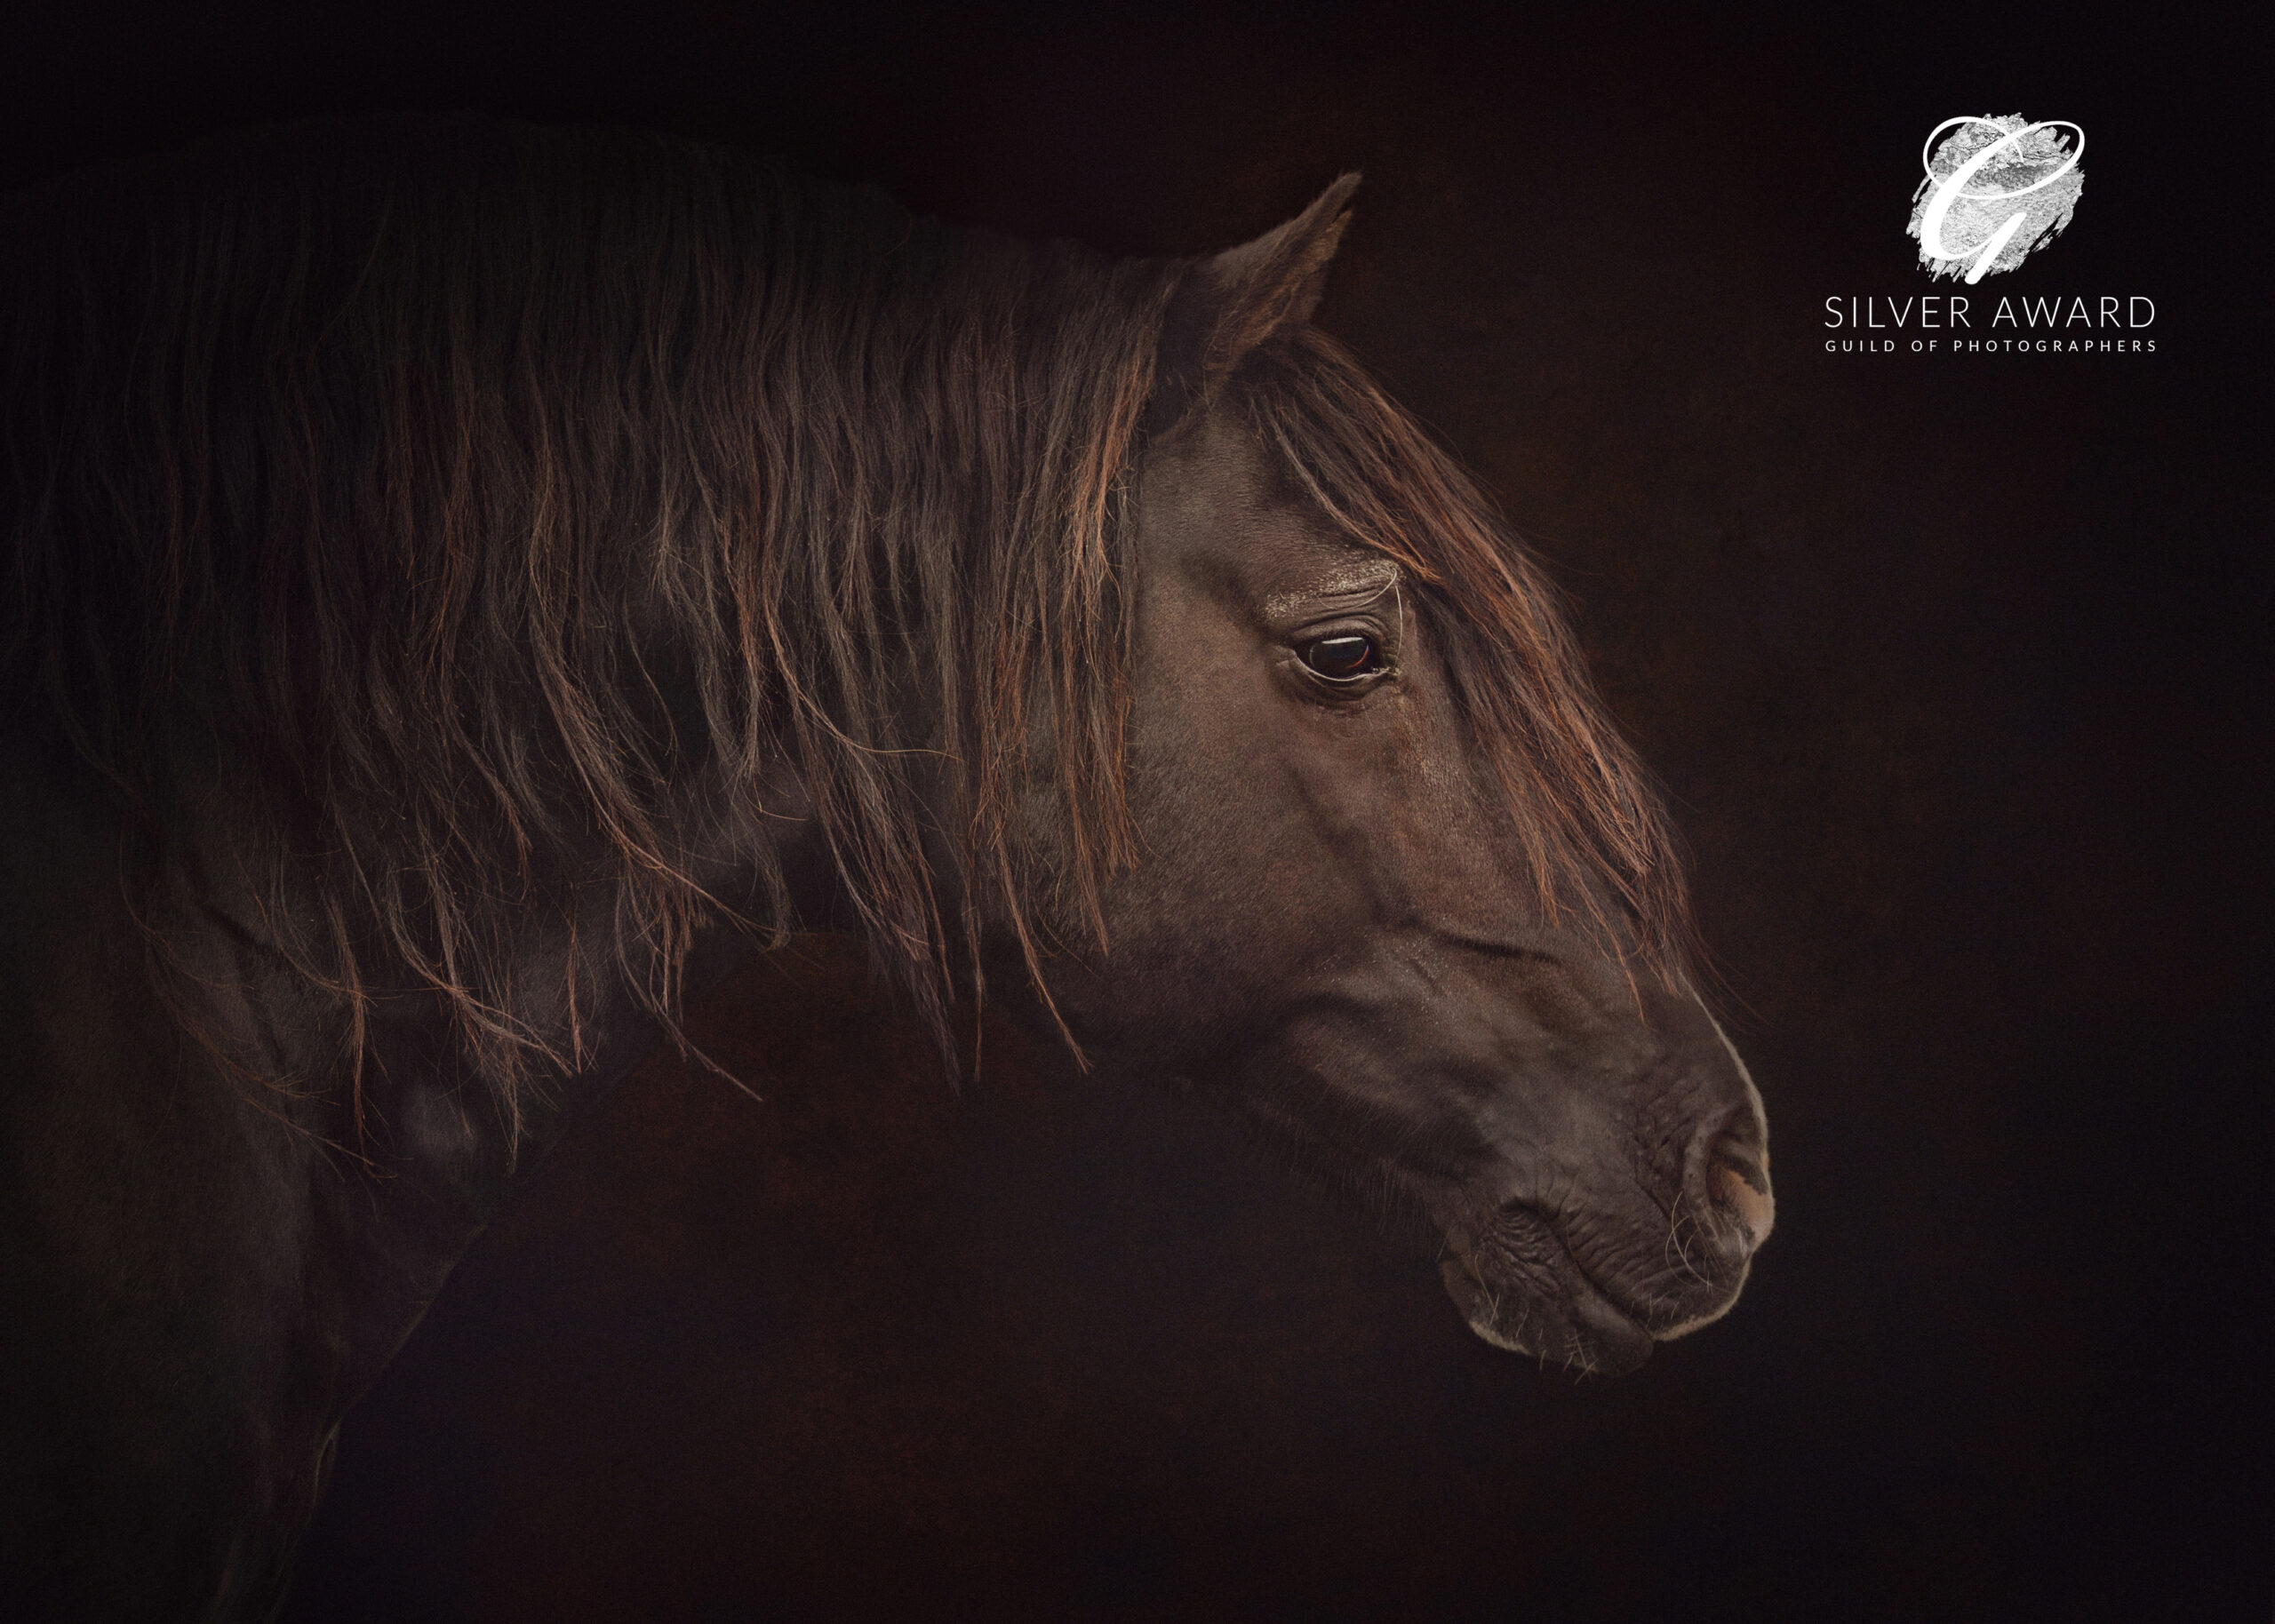 Welsh stallion, photographed by Emma Campbell